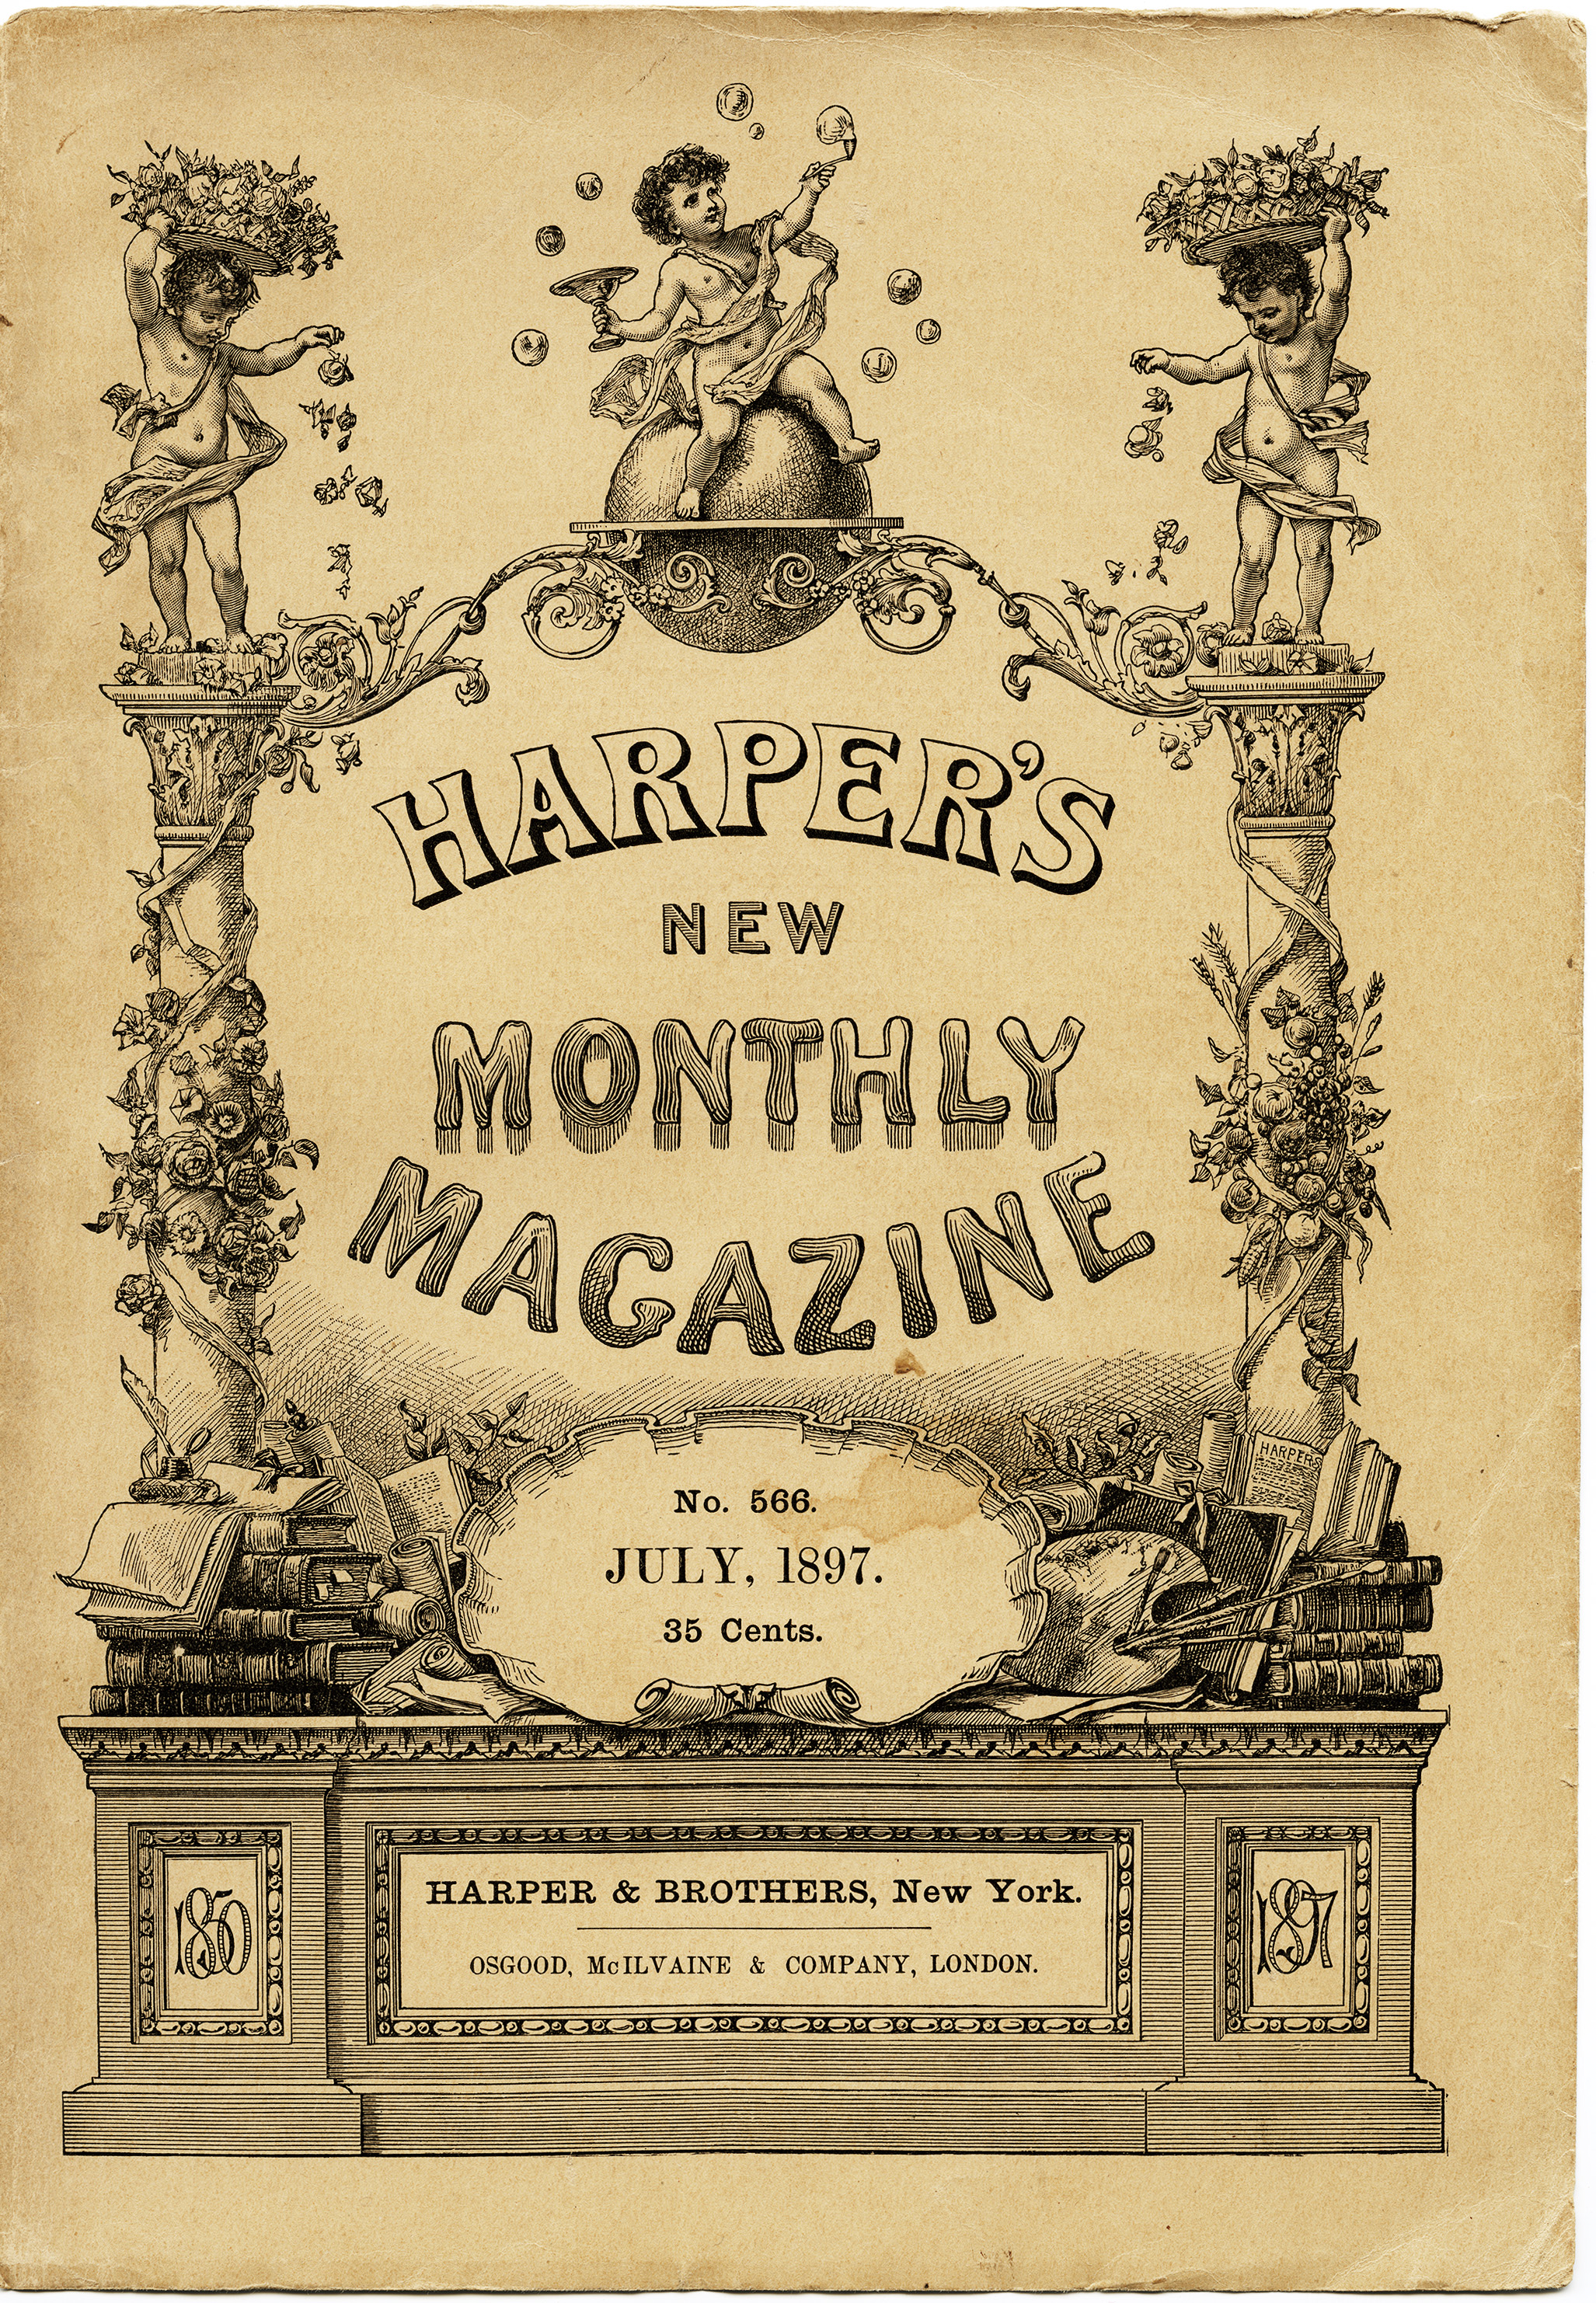 harpers new monthly magazine, aged book cover, shabby digital page, old paper image, antique yellowed vintage ephemera